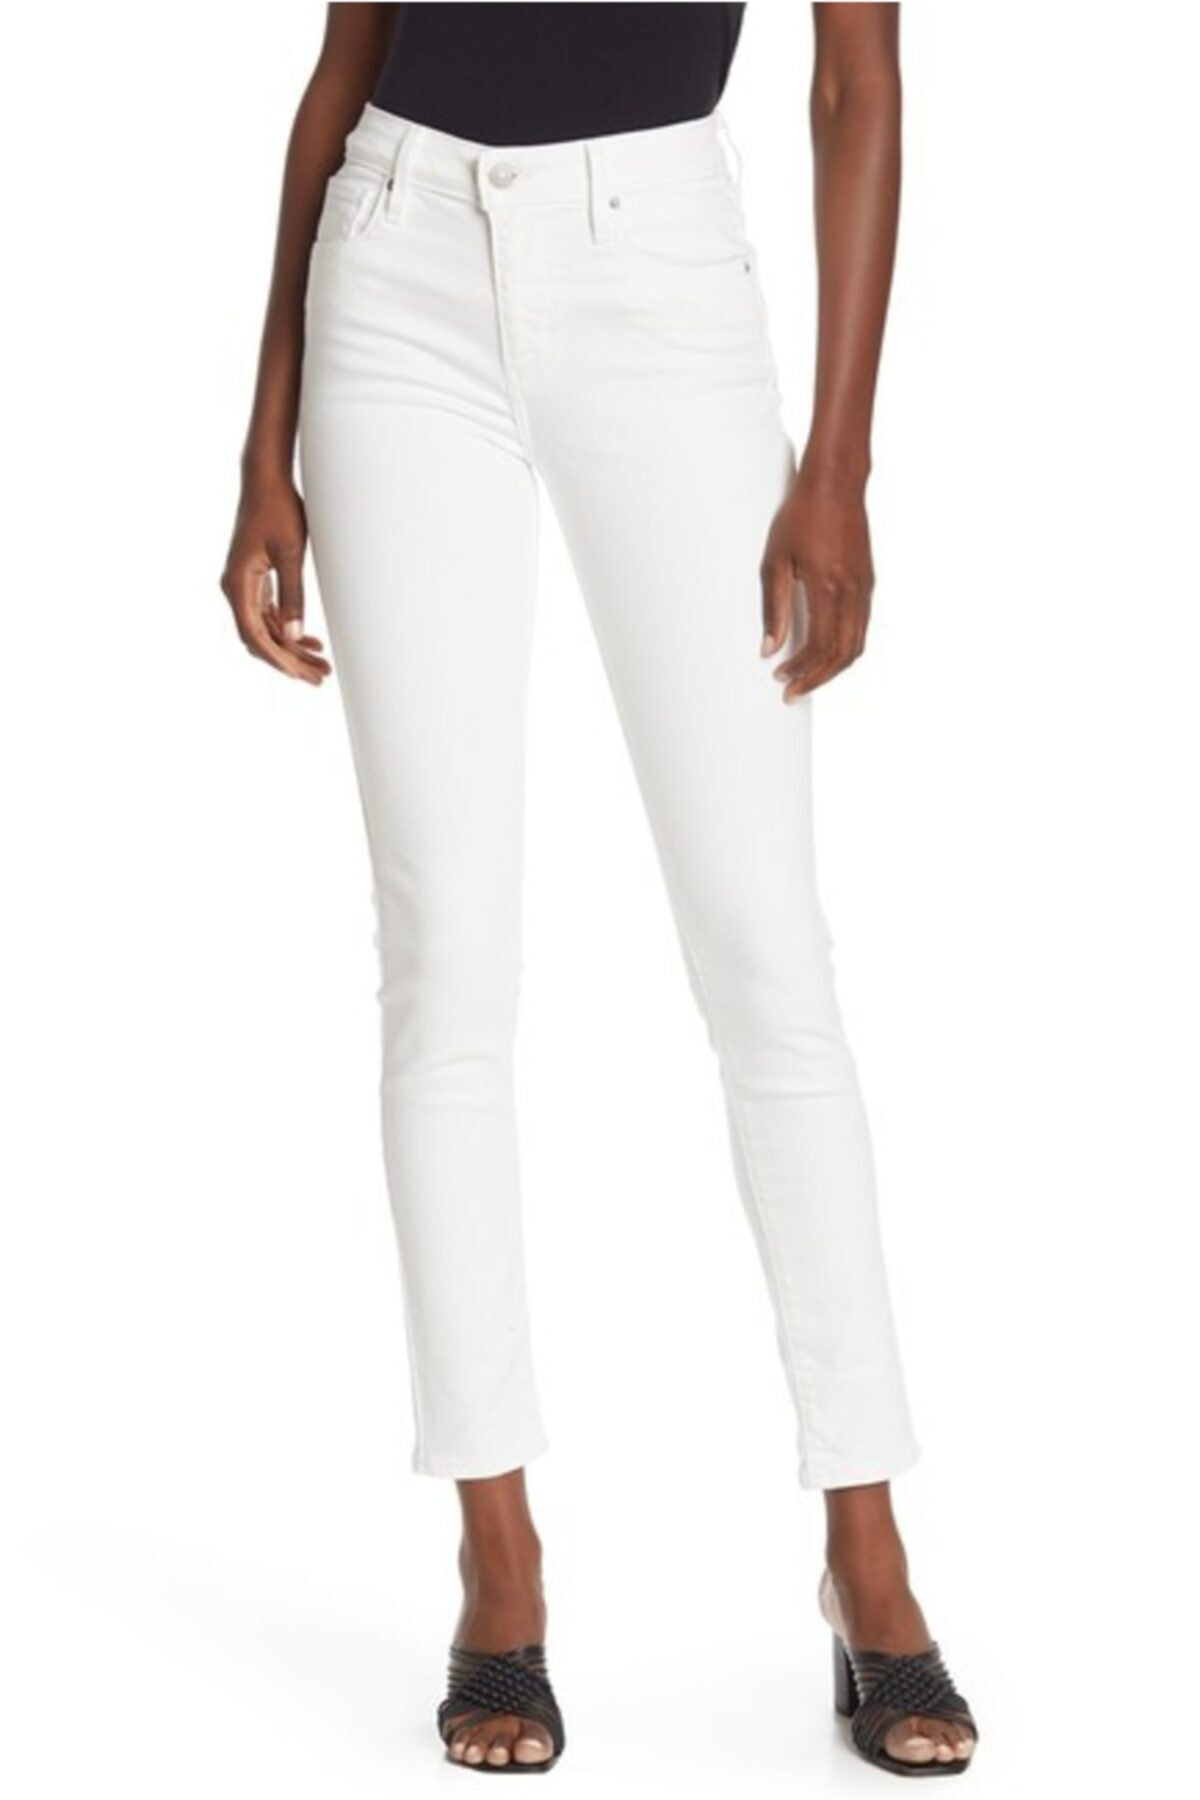 Levi's 721 High Rise Skinny Ankle Jeans 1